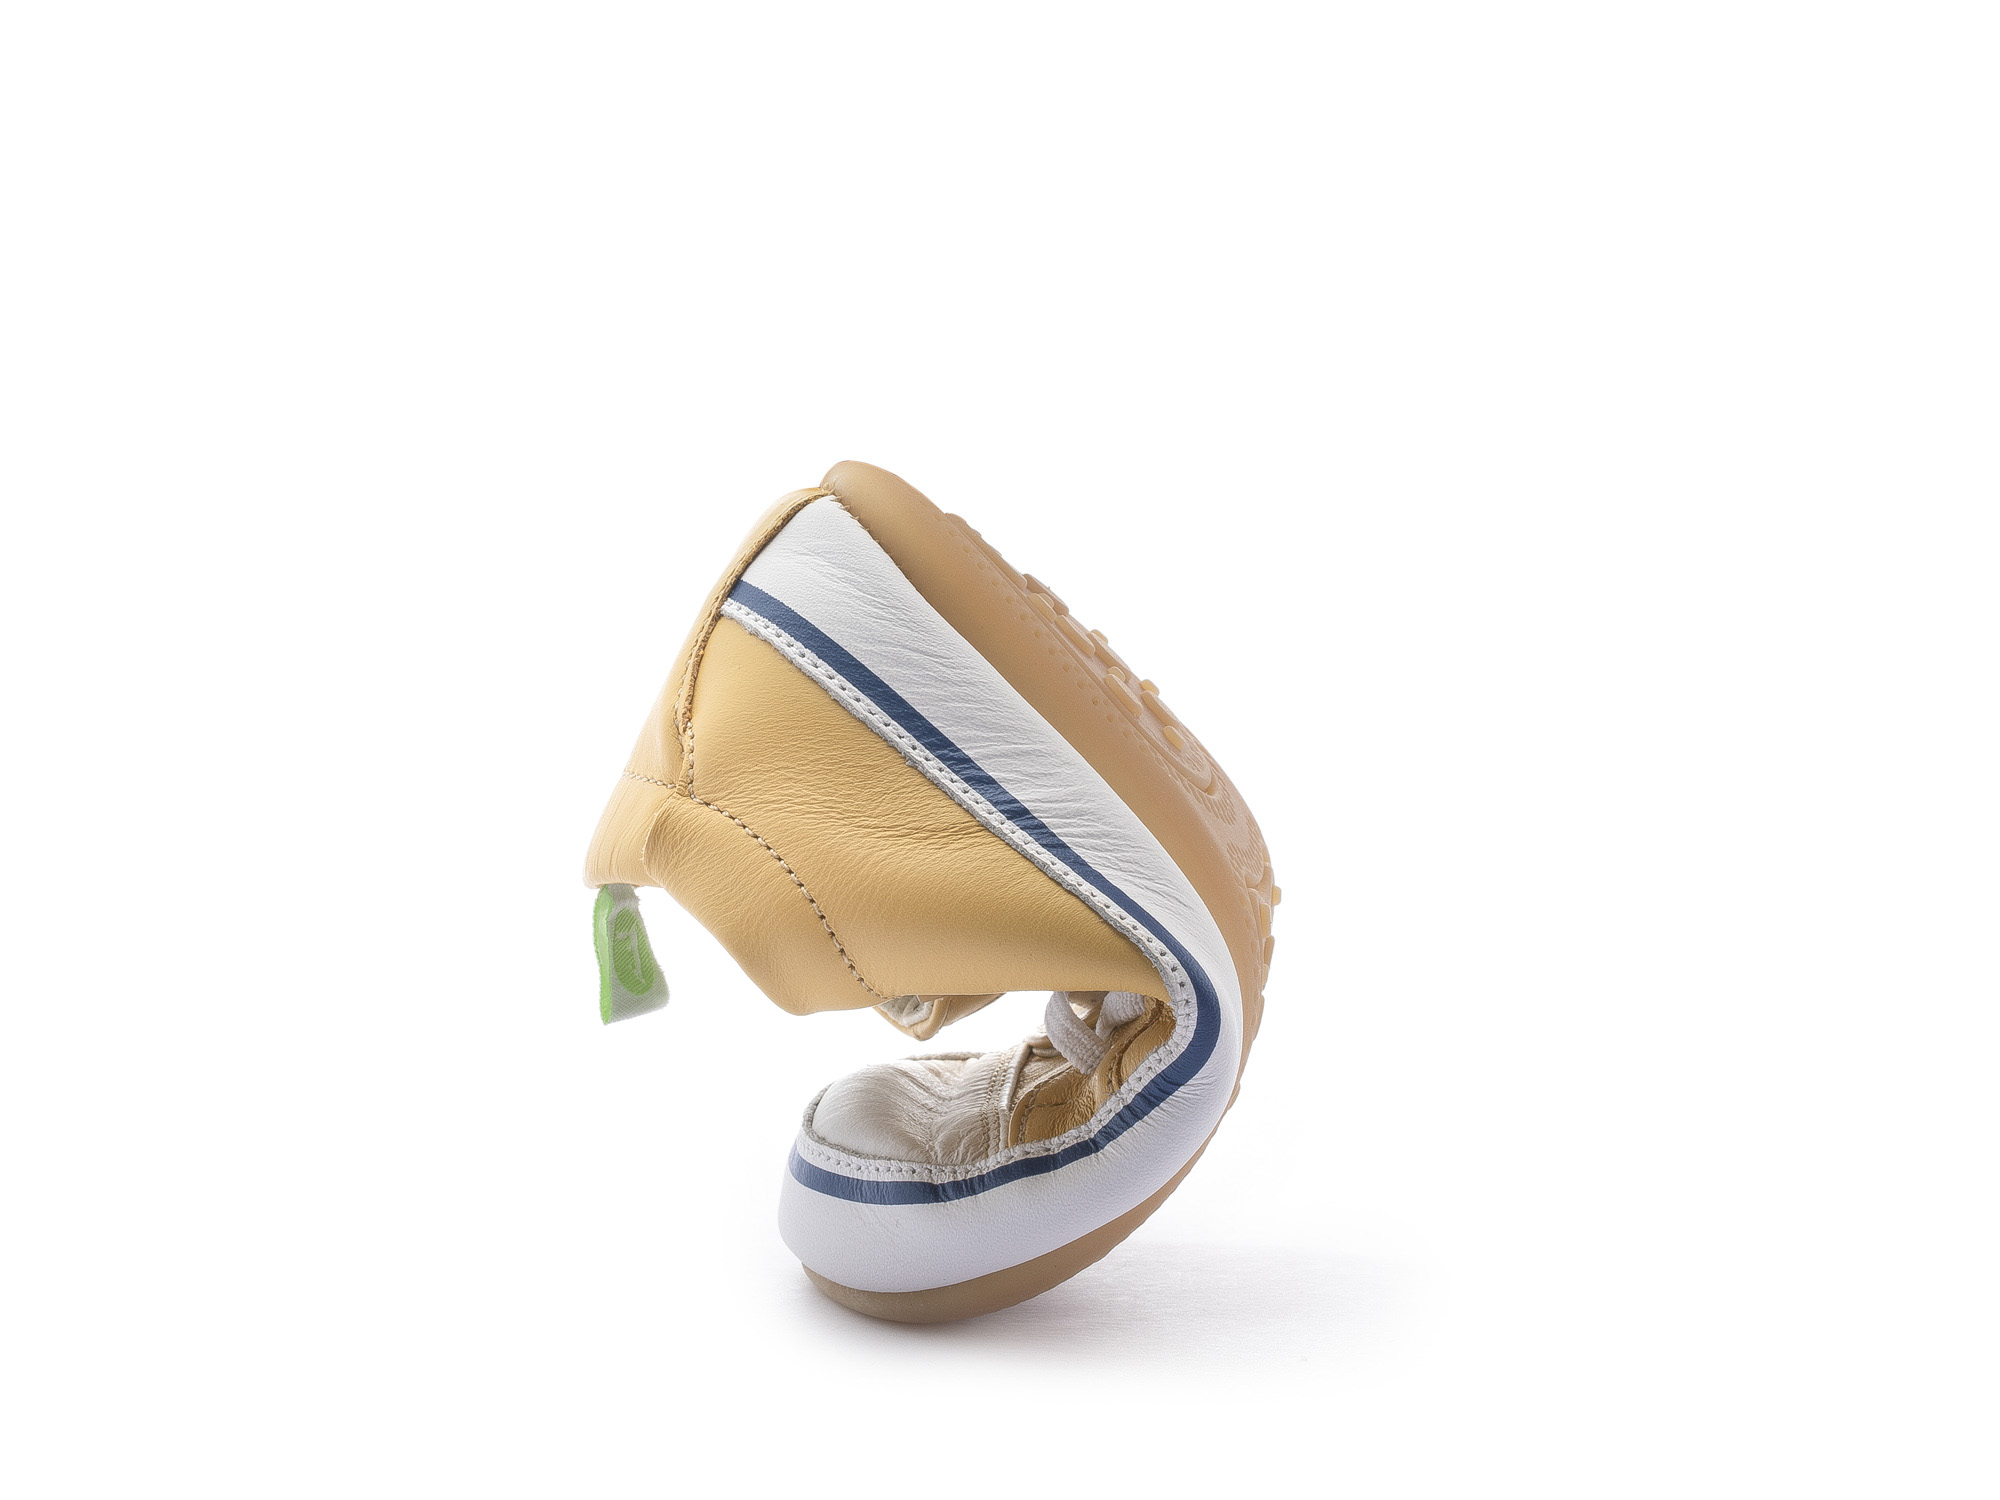 Sneaker Casual Funky Pequi/ White Baby 0 à 2 anos - 2